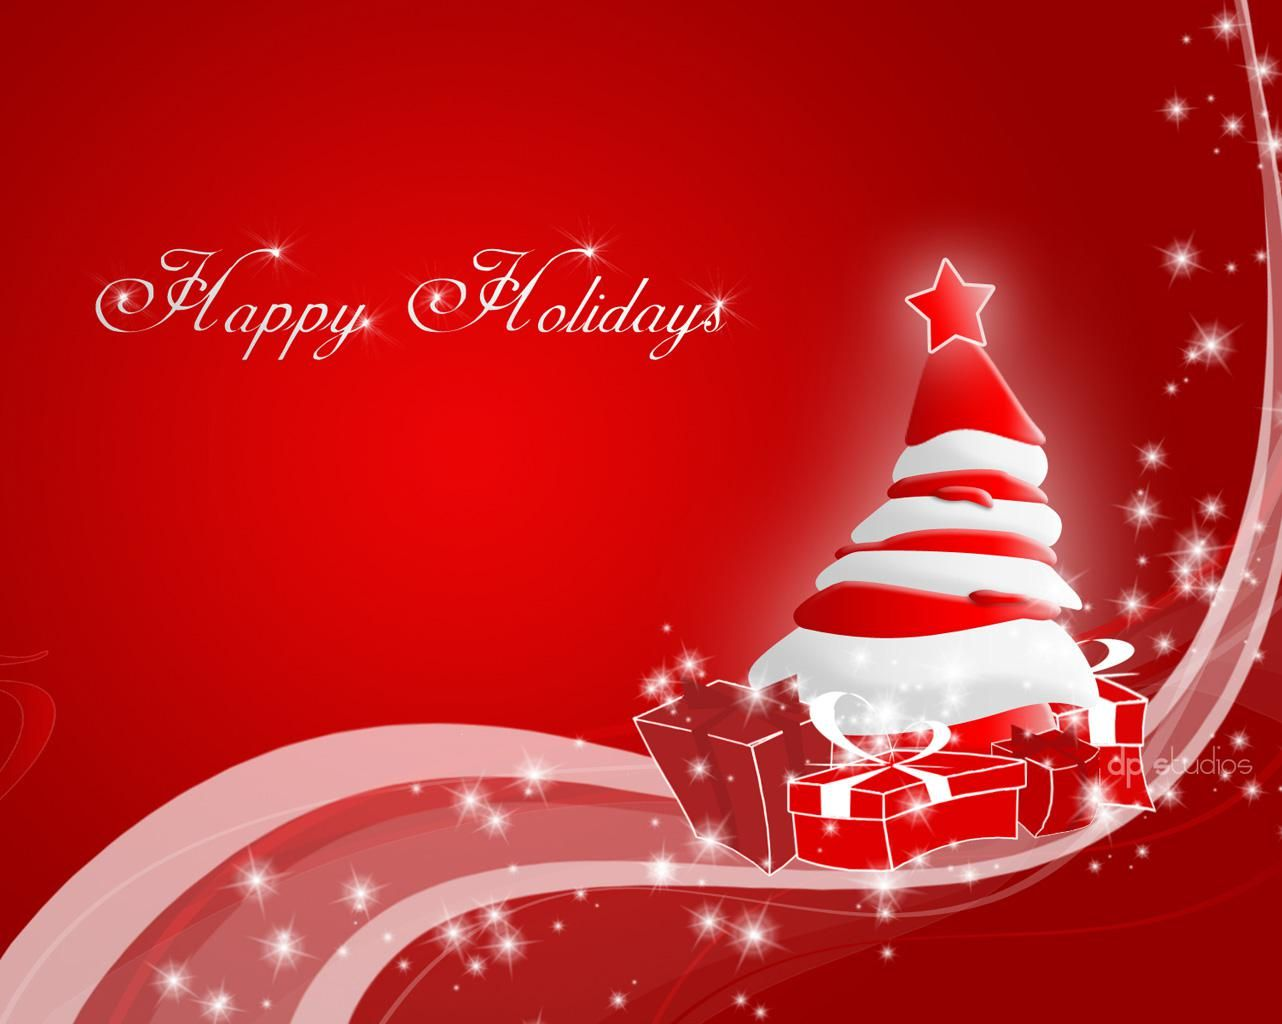 19 best xmas card ideas images on pinterest card ideas free christmas powerpoint background red xmas 8 toneelgroepblik Image collections